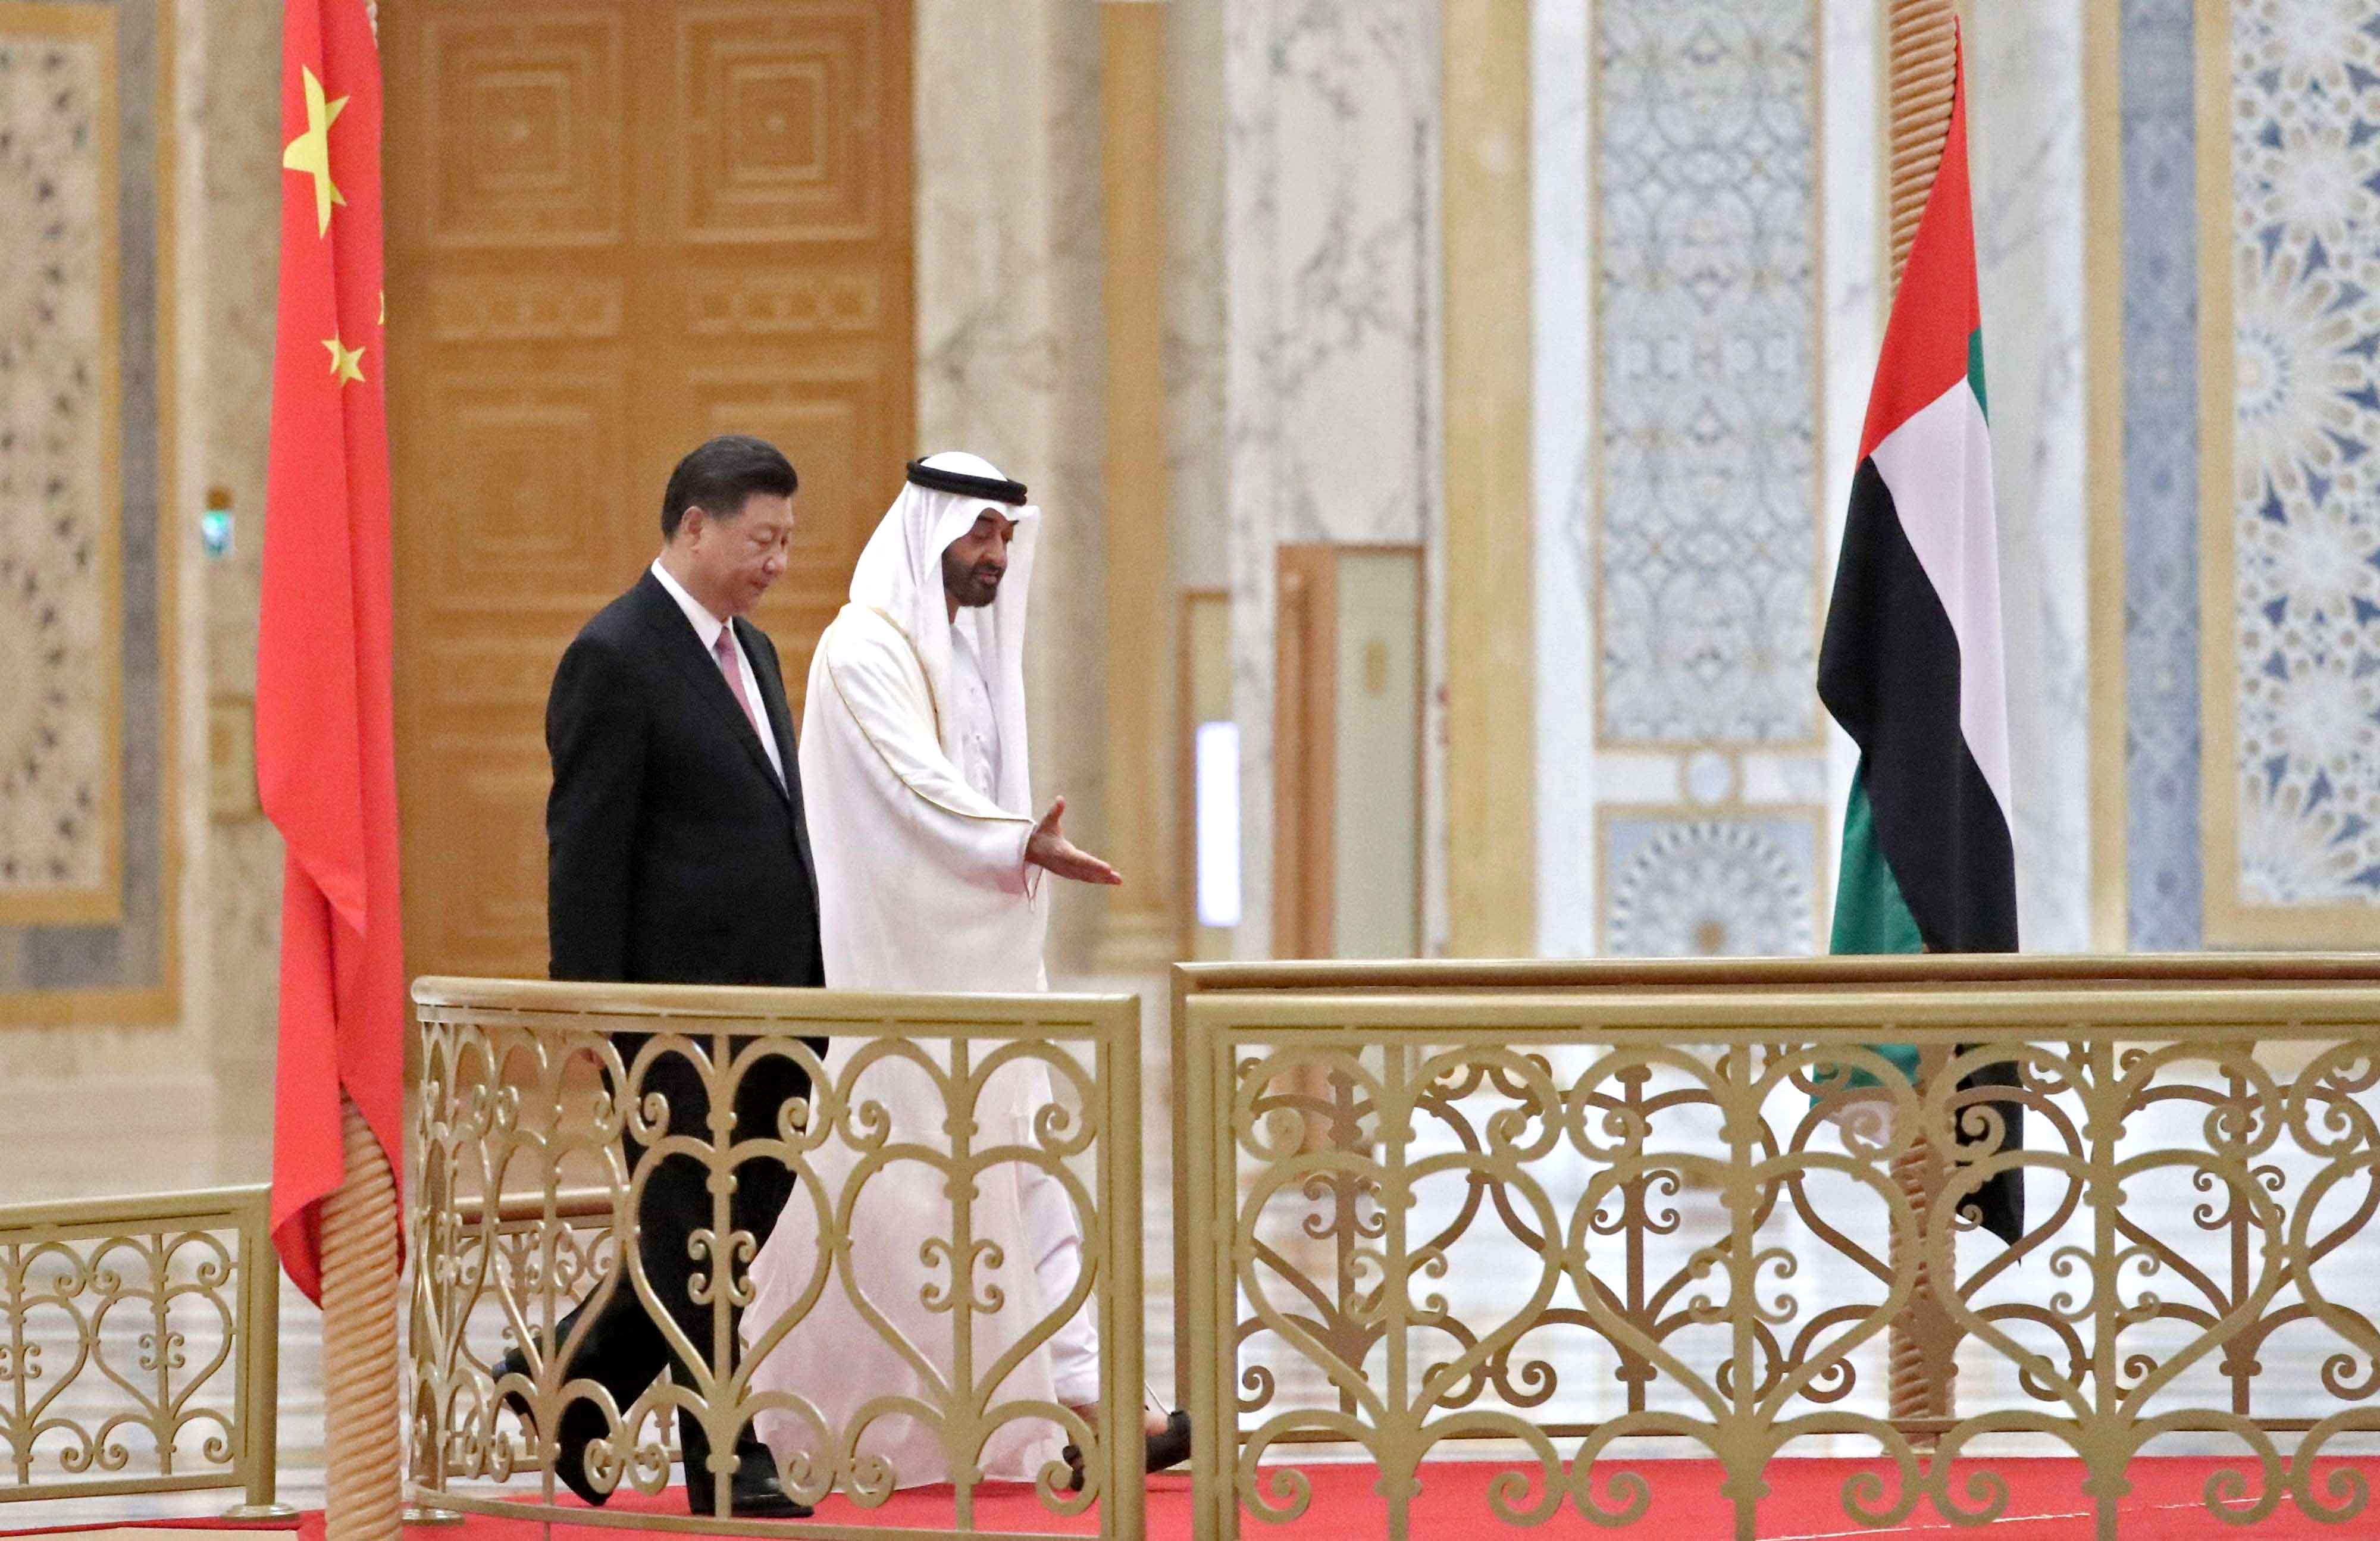 Chinese President Xi Jinping (L) and Abu Dhabi Crown Prince Sheikh Mohammed bin Zayed al-Nahyan arrive at the presidential palace in Abu Dhabi, on July 20. (AFP)